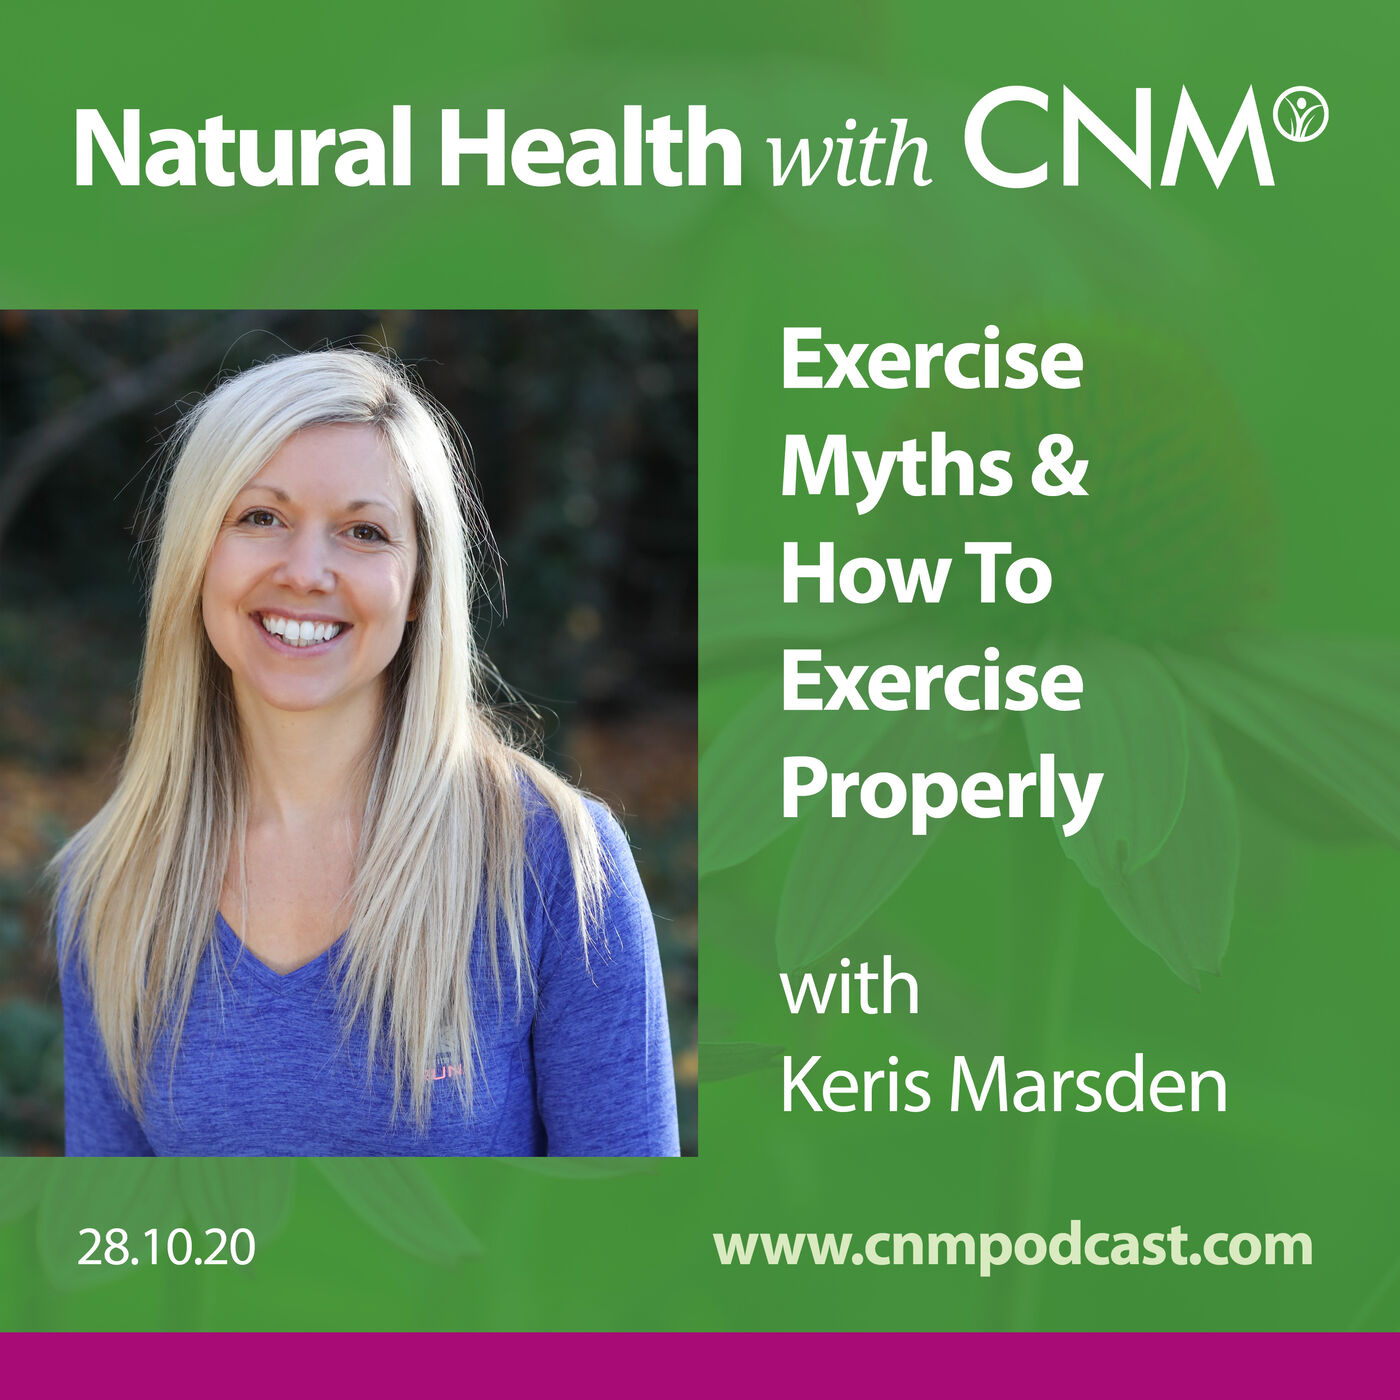 Exercise Myths and How to Exercise Properly with Keris Marsden